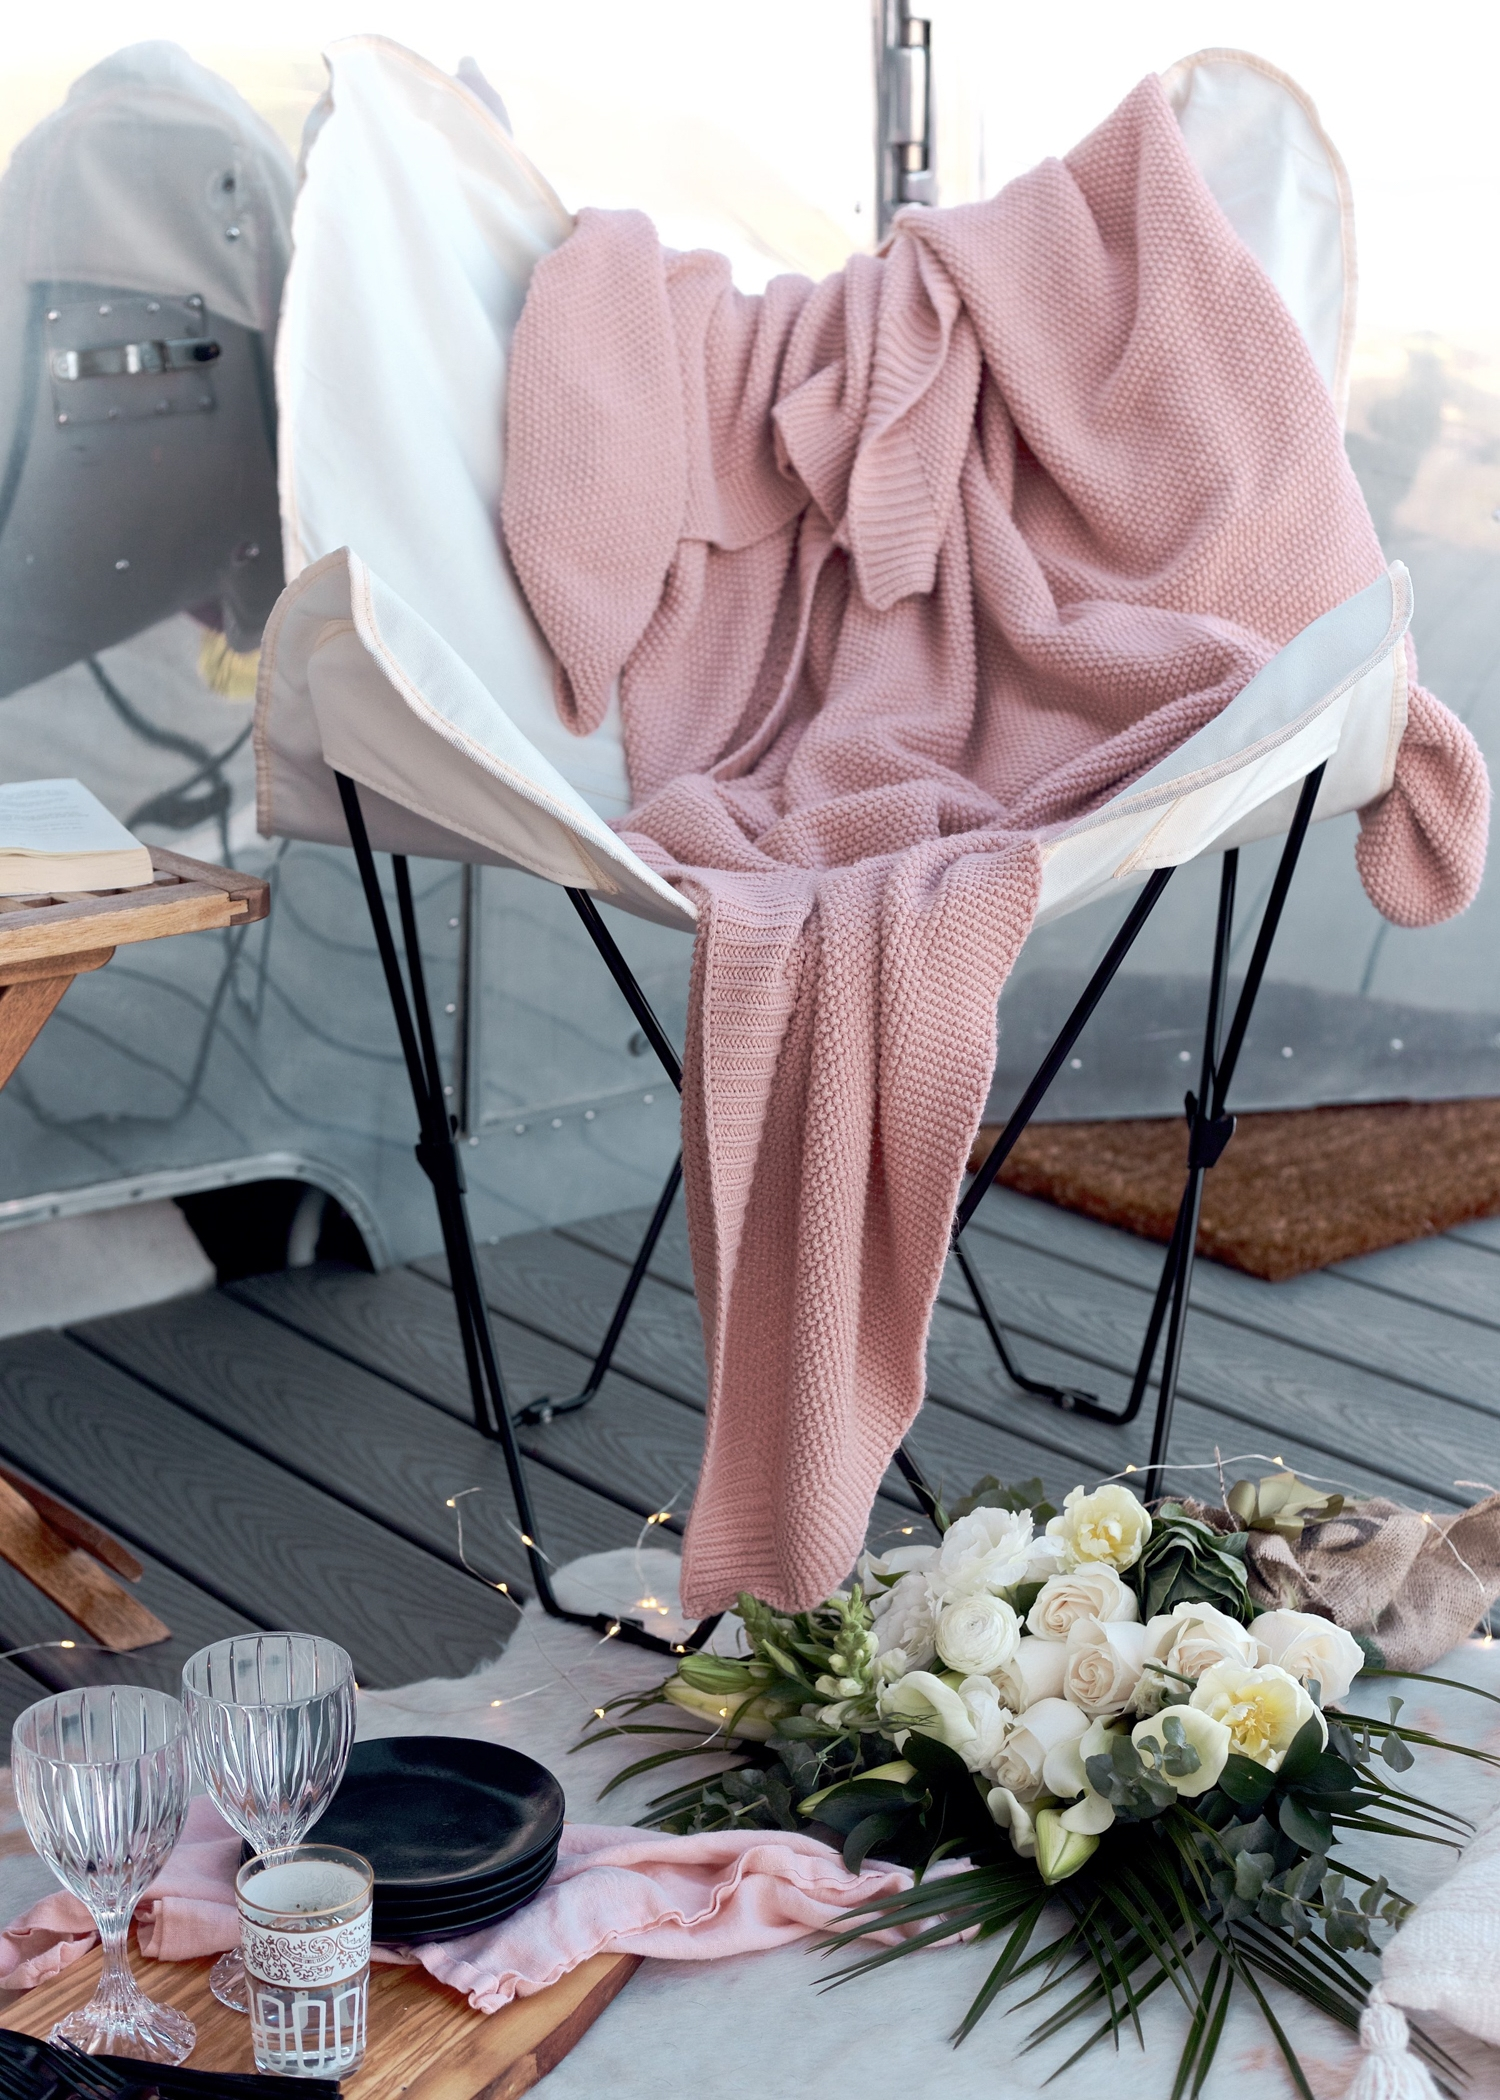 Glamping necessities | A Fabulous Fete